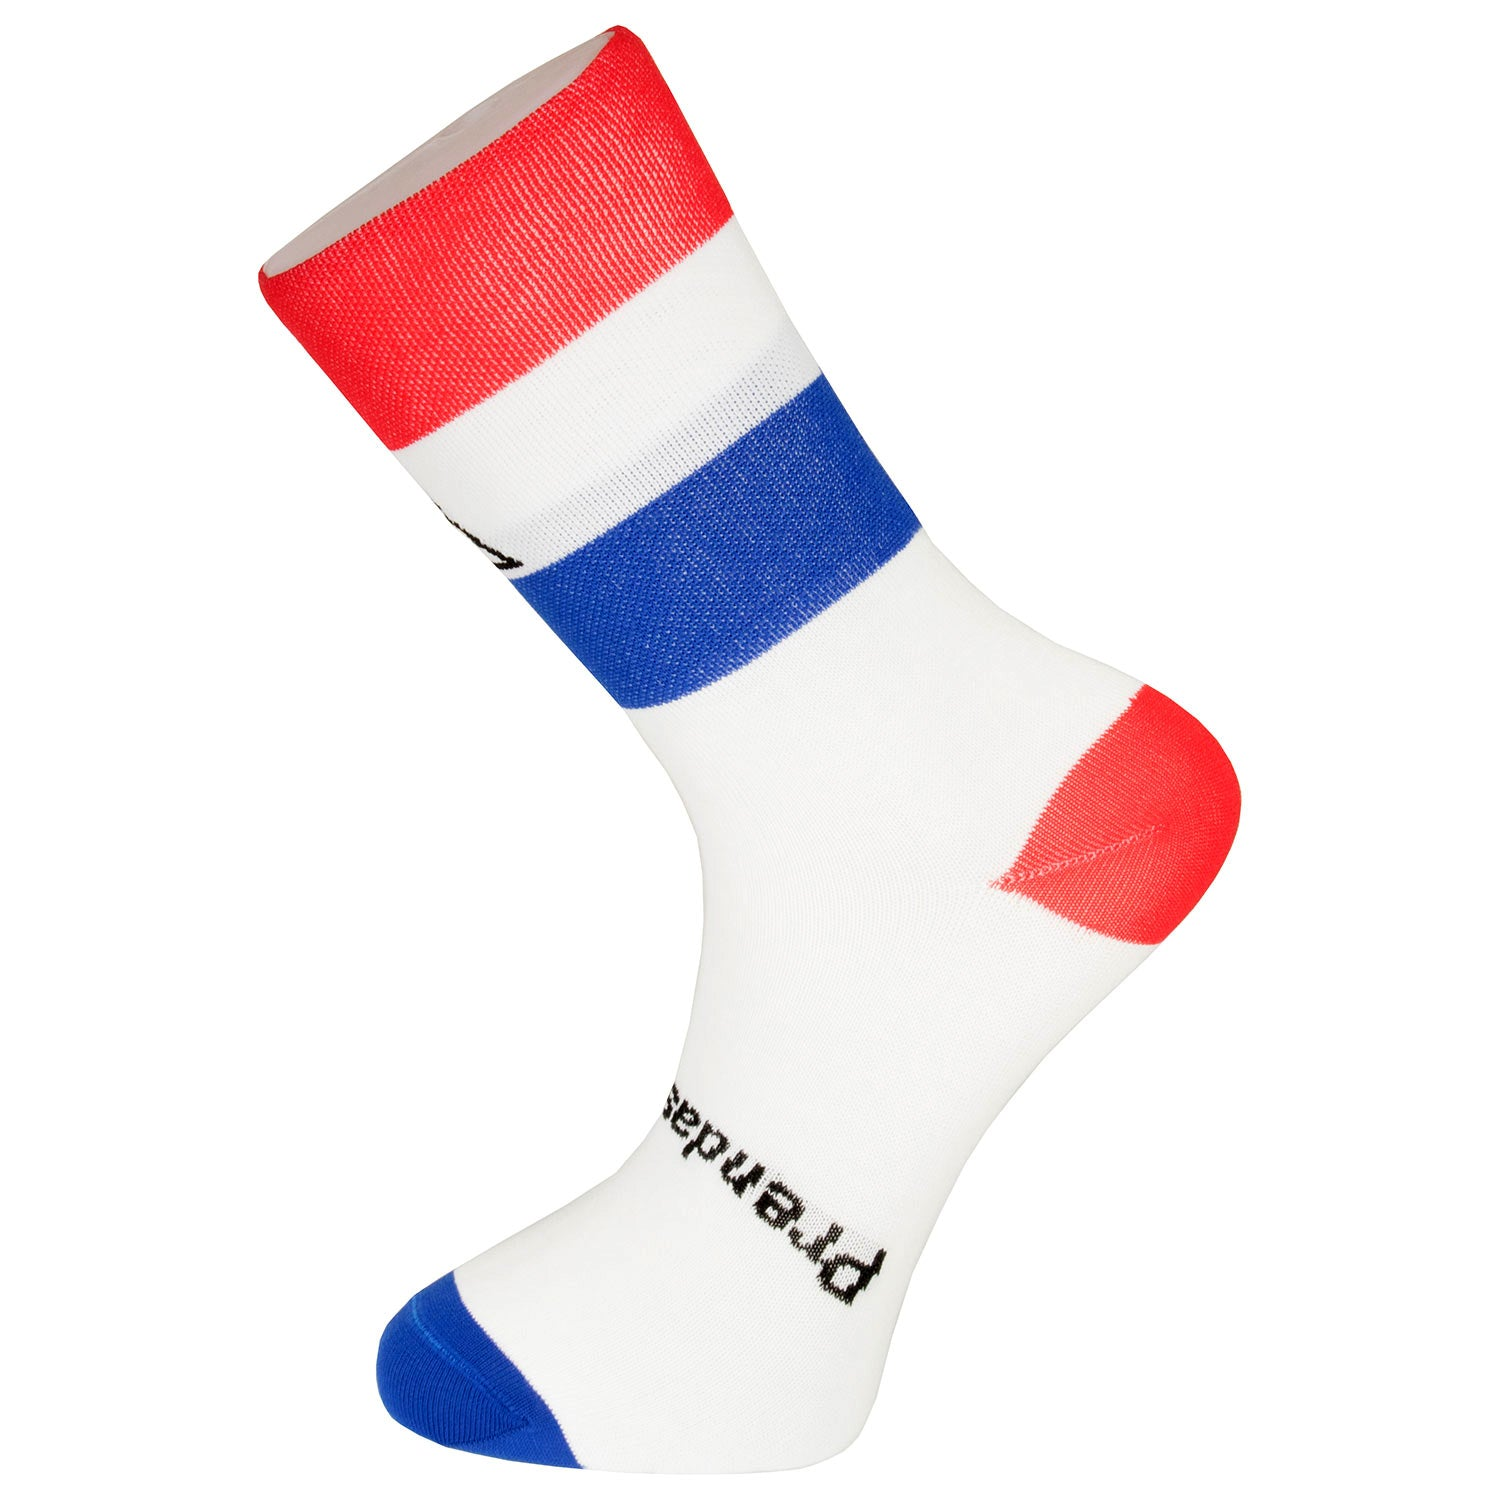 Prendas Ciclismo GB Tall Coolmax Socks